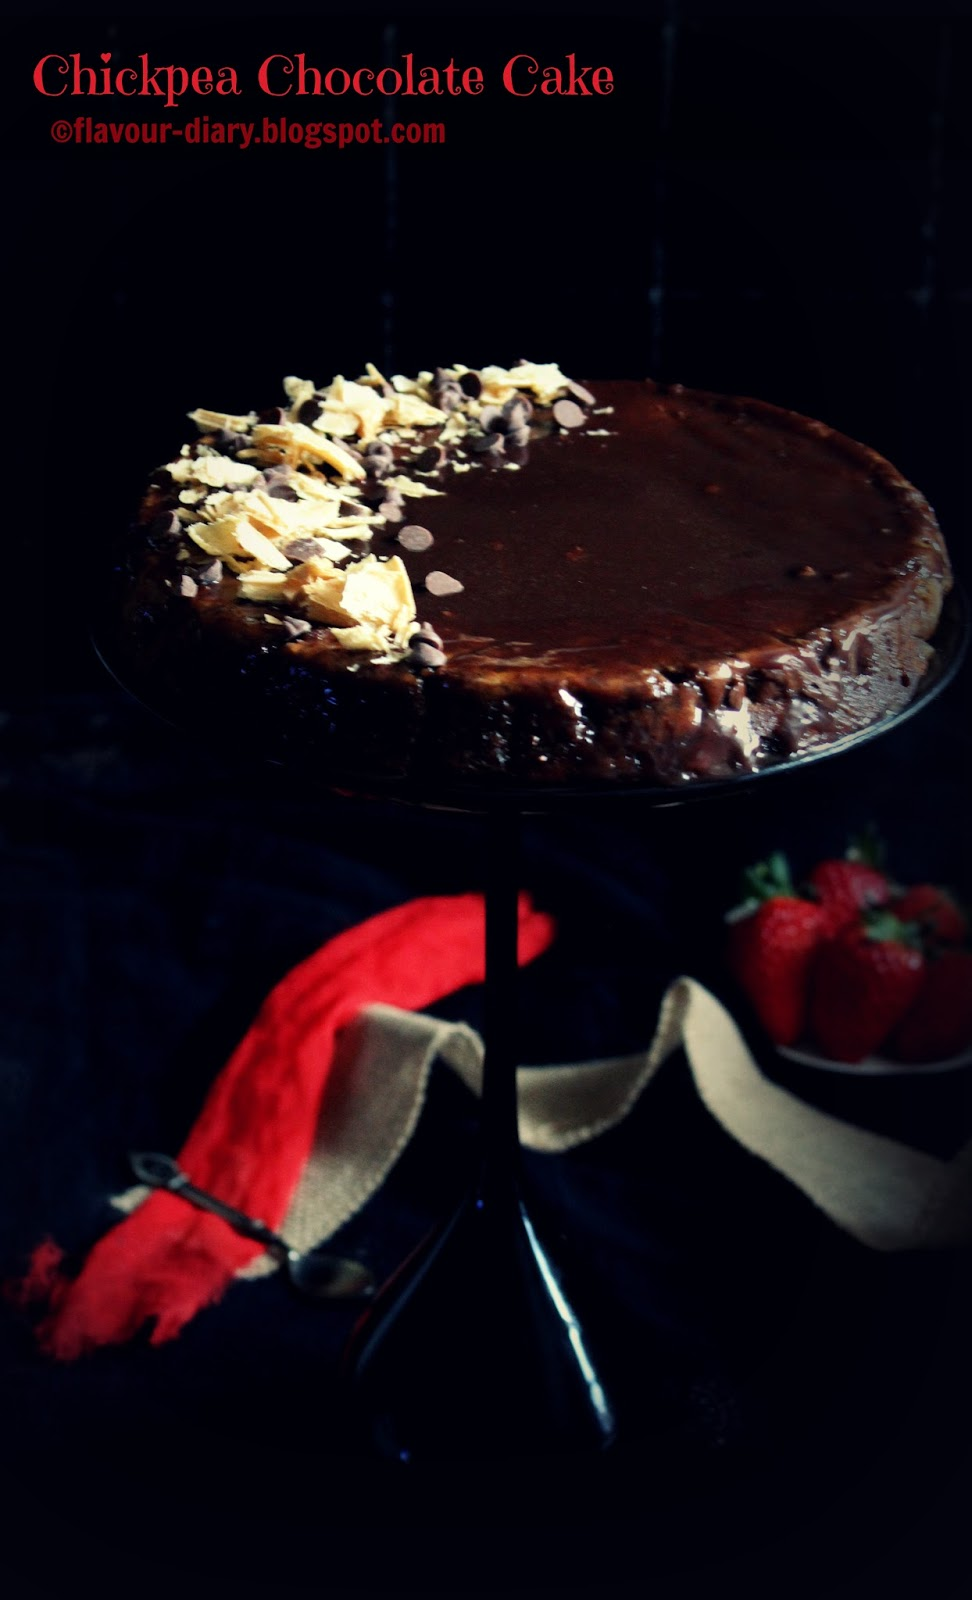 Chickpea Chocolate Cake Gluten Free Butter Less